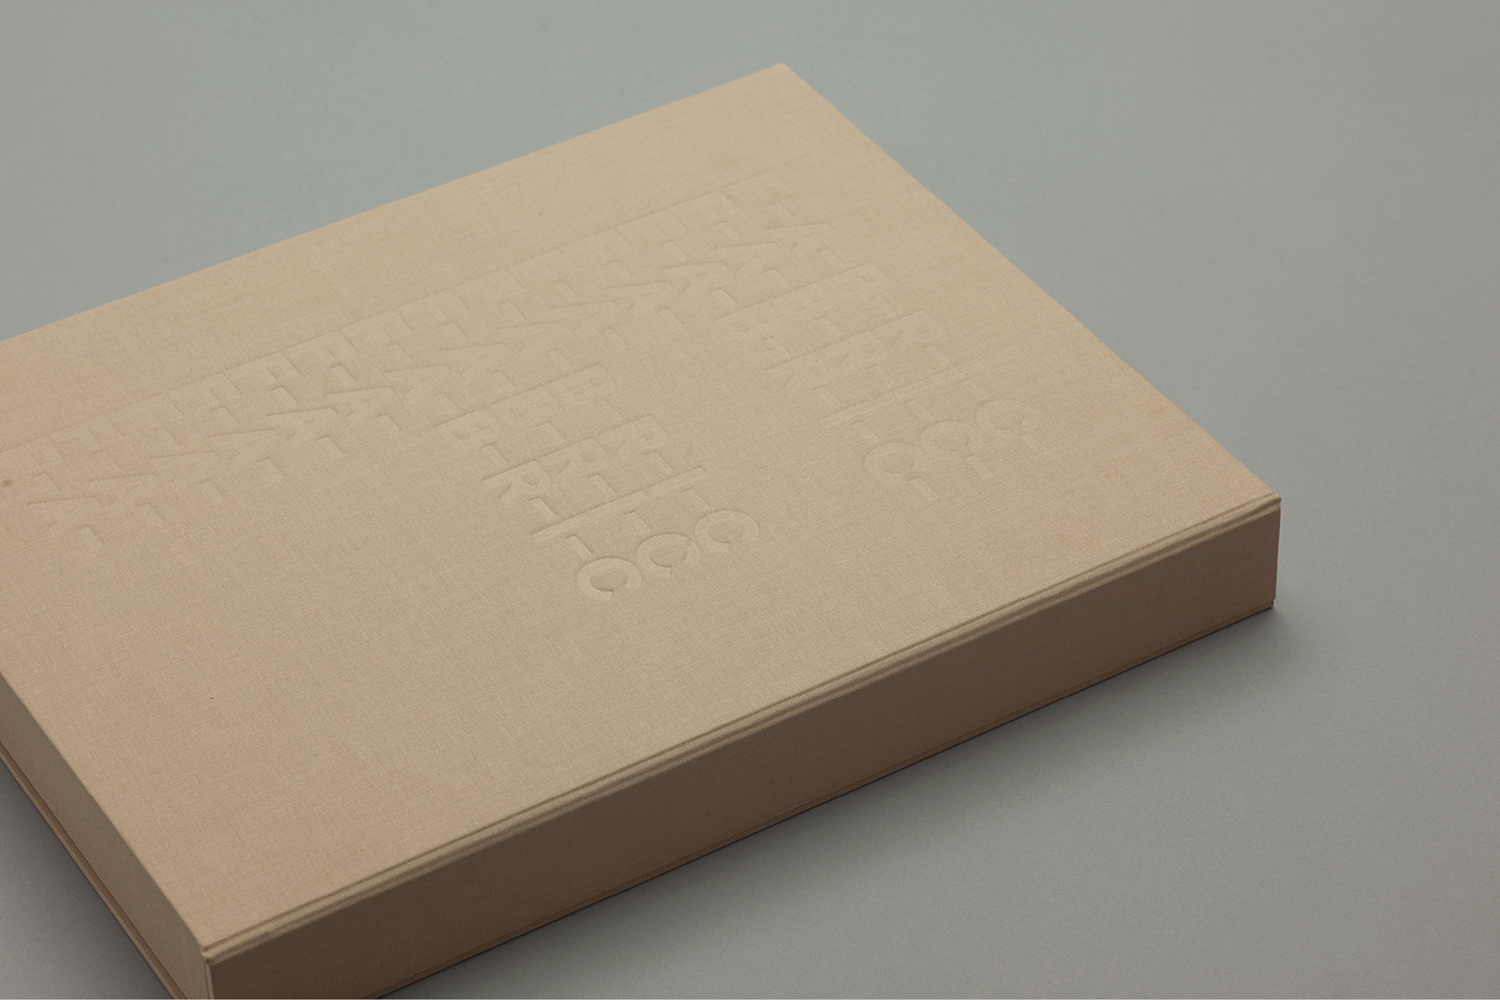 Brand identity and folder with fabric cover and blind deboss detail by Richards Partners for Auckland residential development Fabric of Onehunga